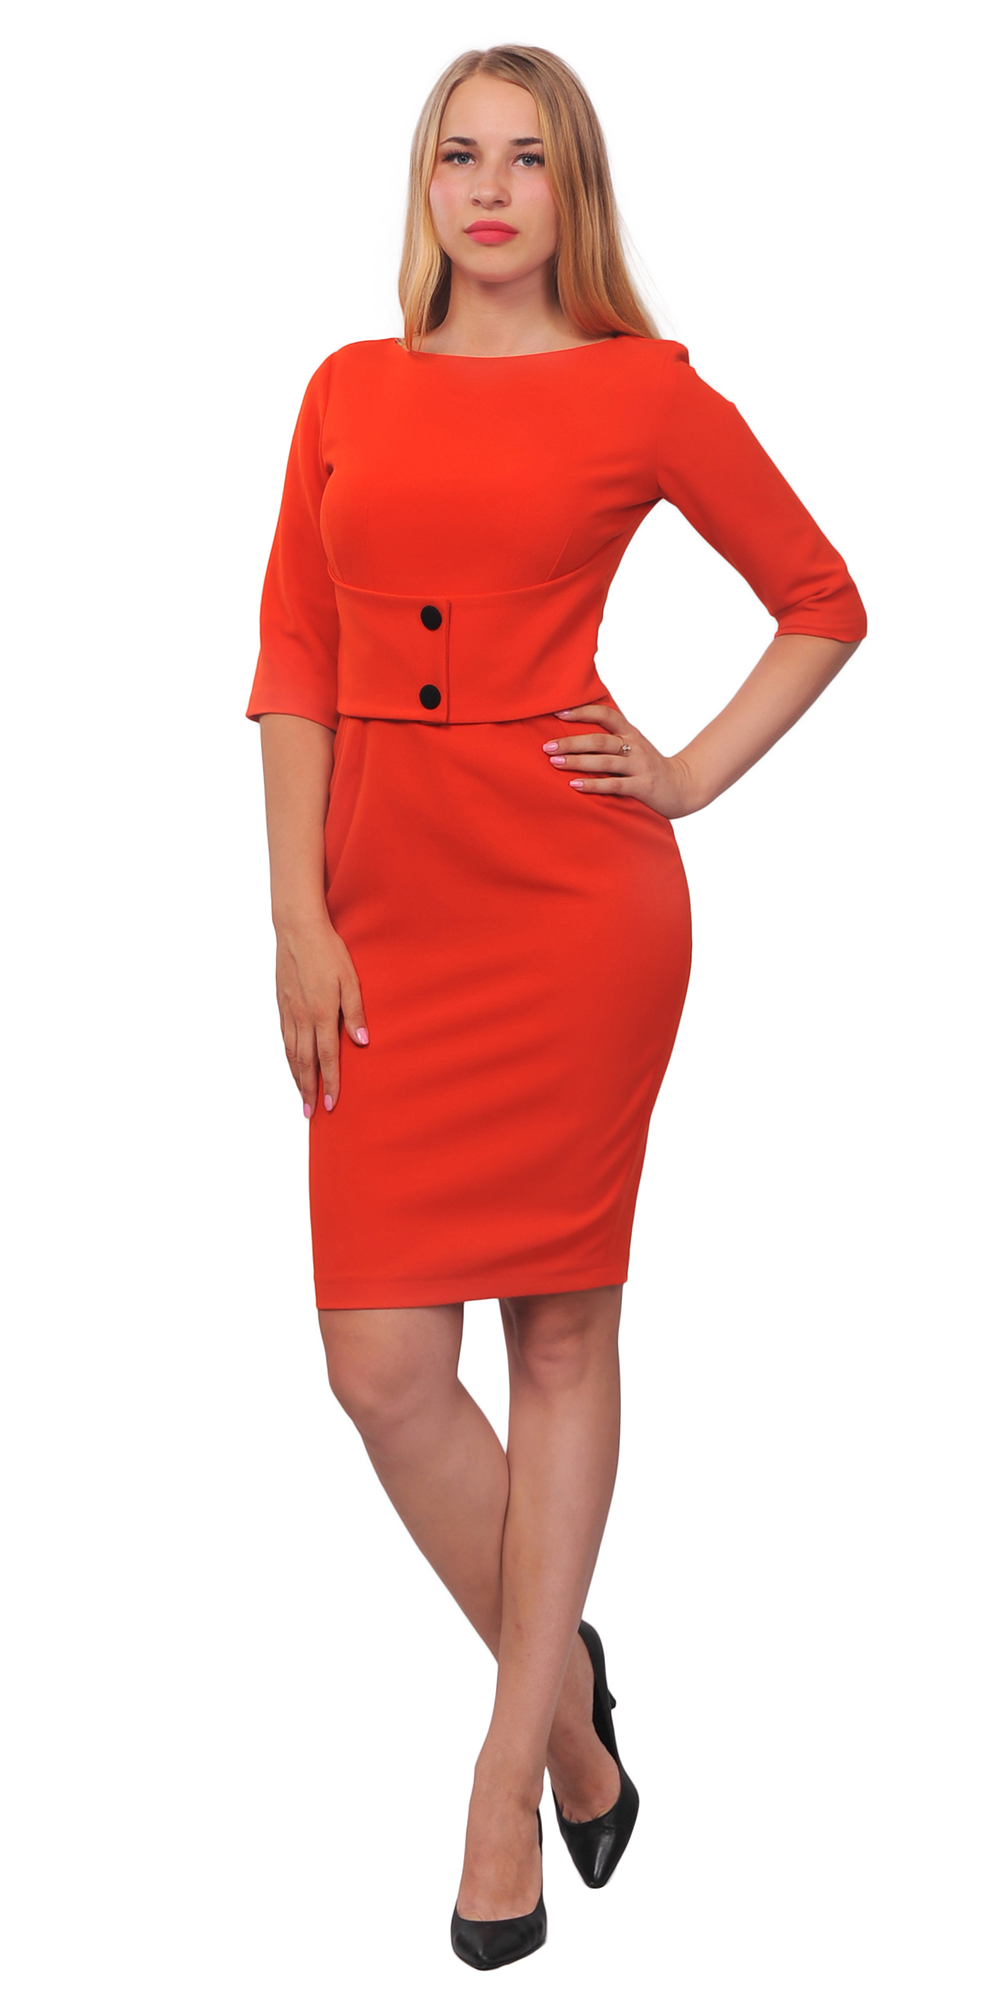 CLASSY WORK OFFICE WIGGLE PENCIL DRESS Classic VINTAGE 1950S 1960S ...